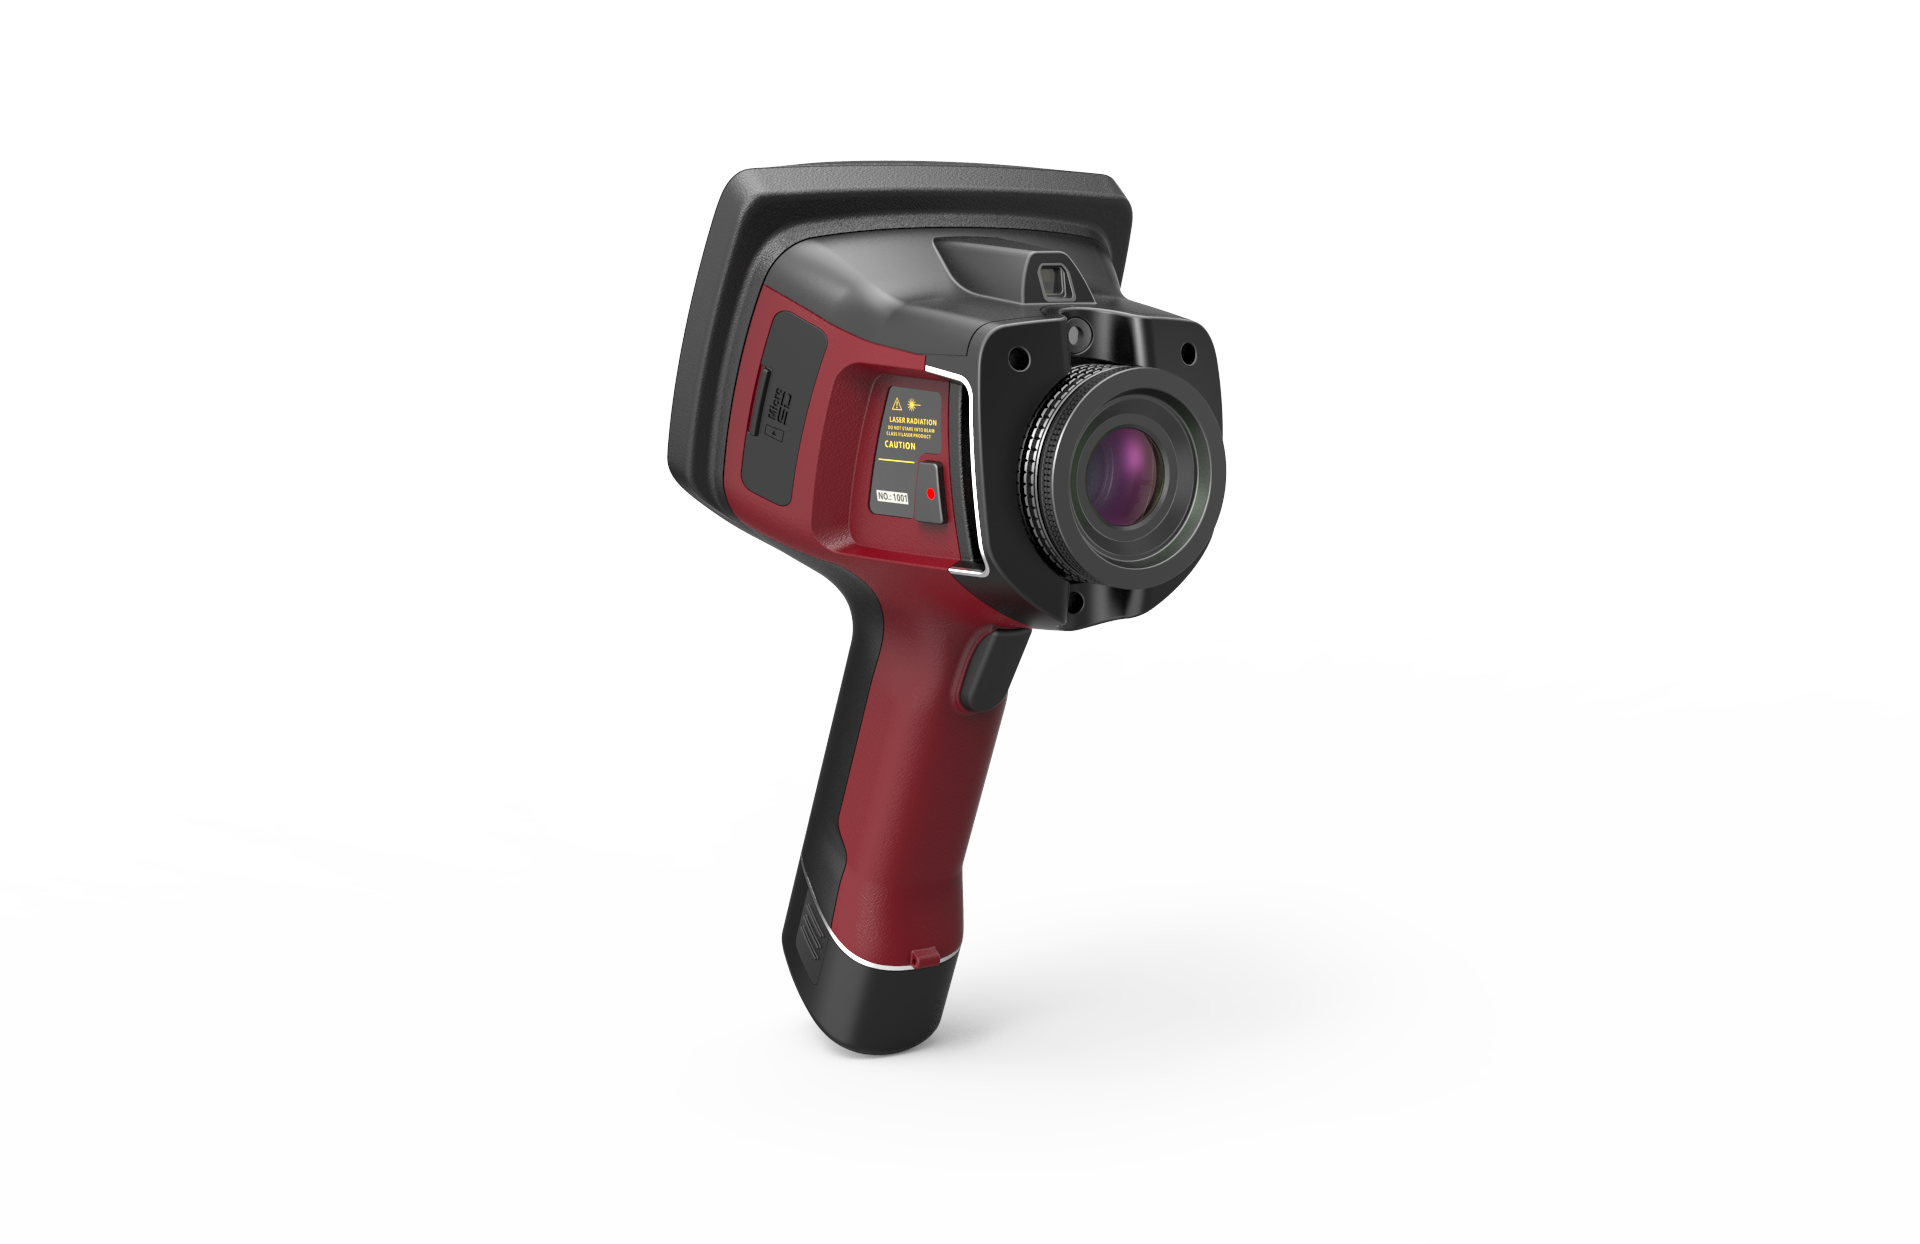 Power industry electric power tools infrared Temperature measurement camera 1